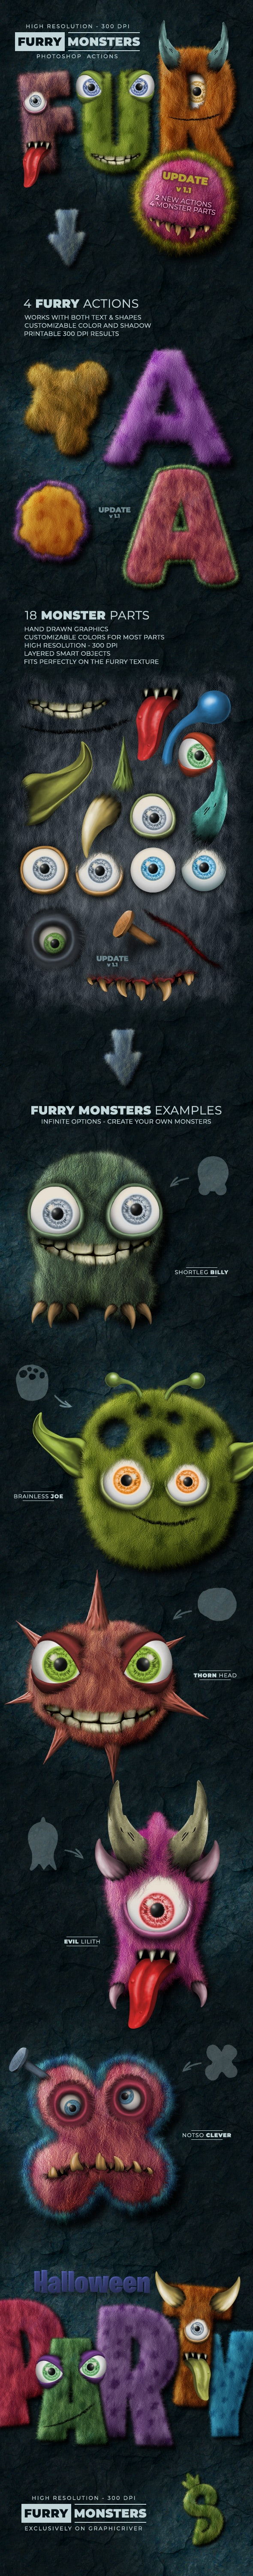 Furry Monster Actions - 300 DPI - Text Effects Actions